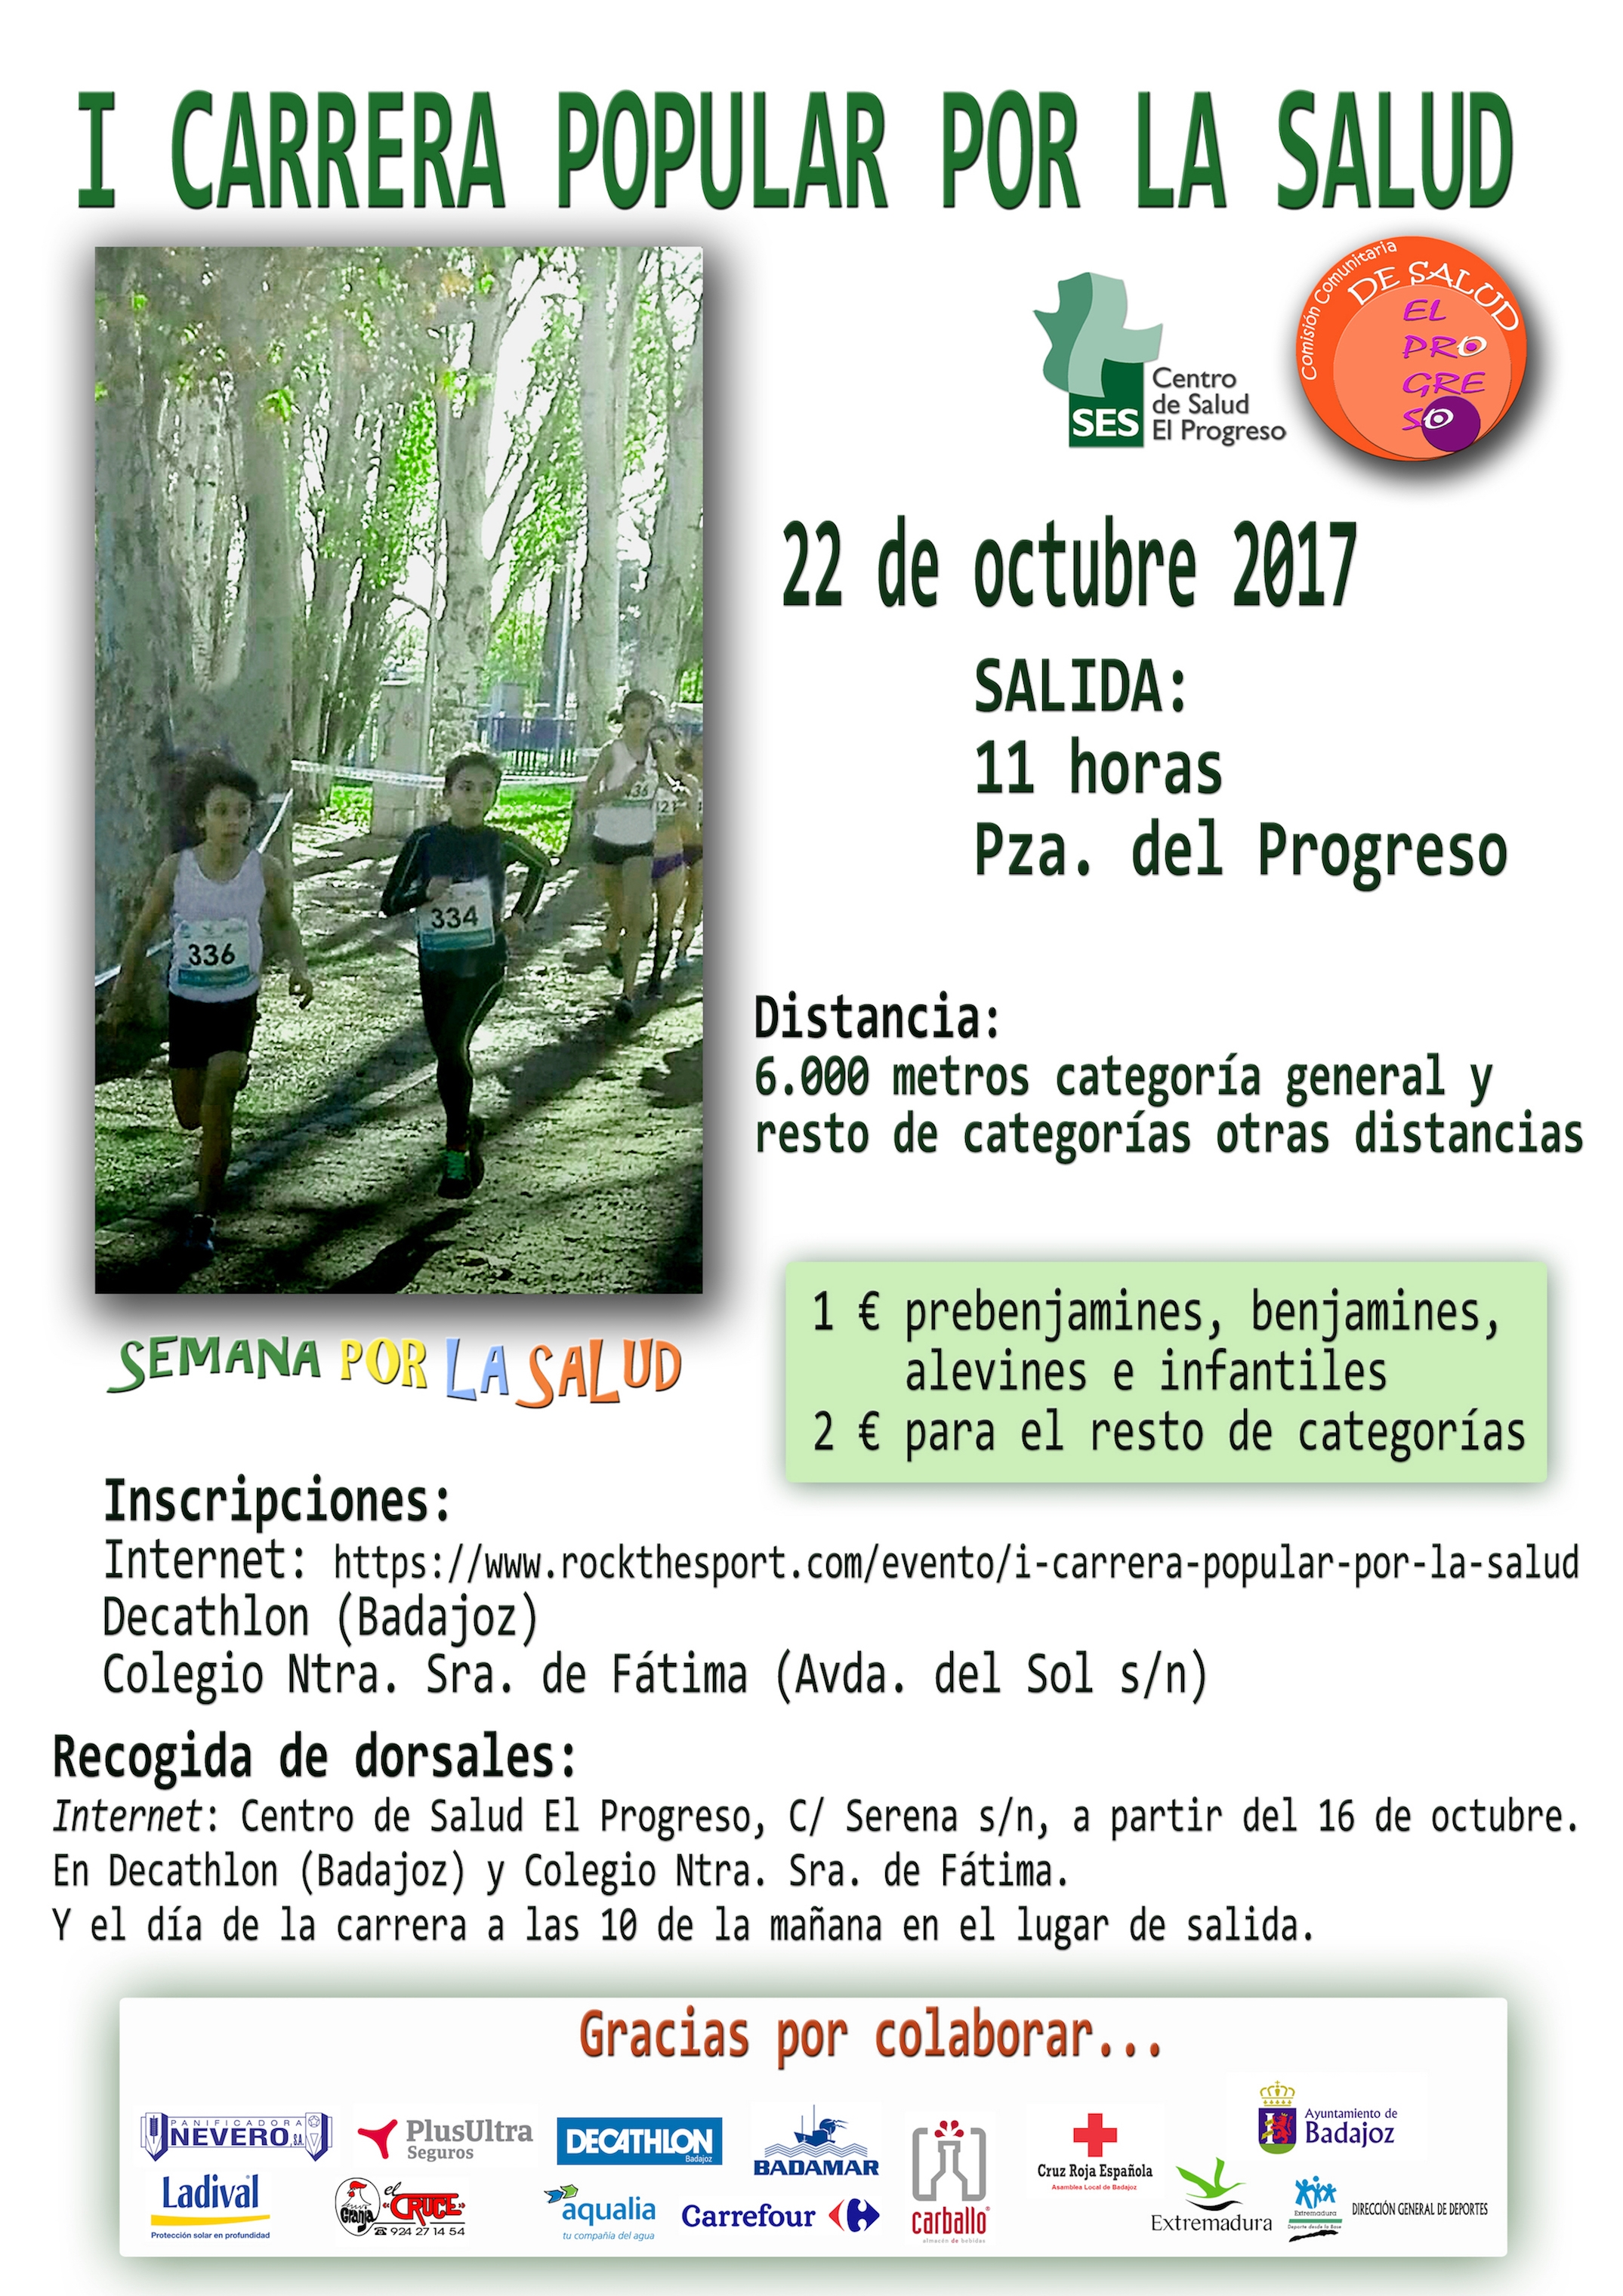 I Carrera Popular por la Salud